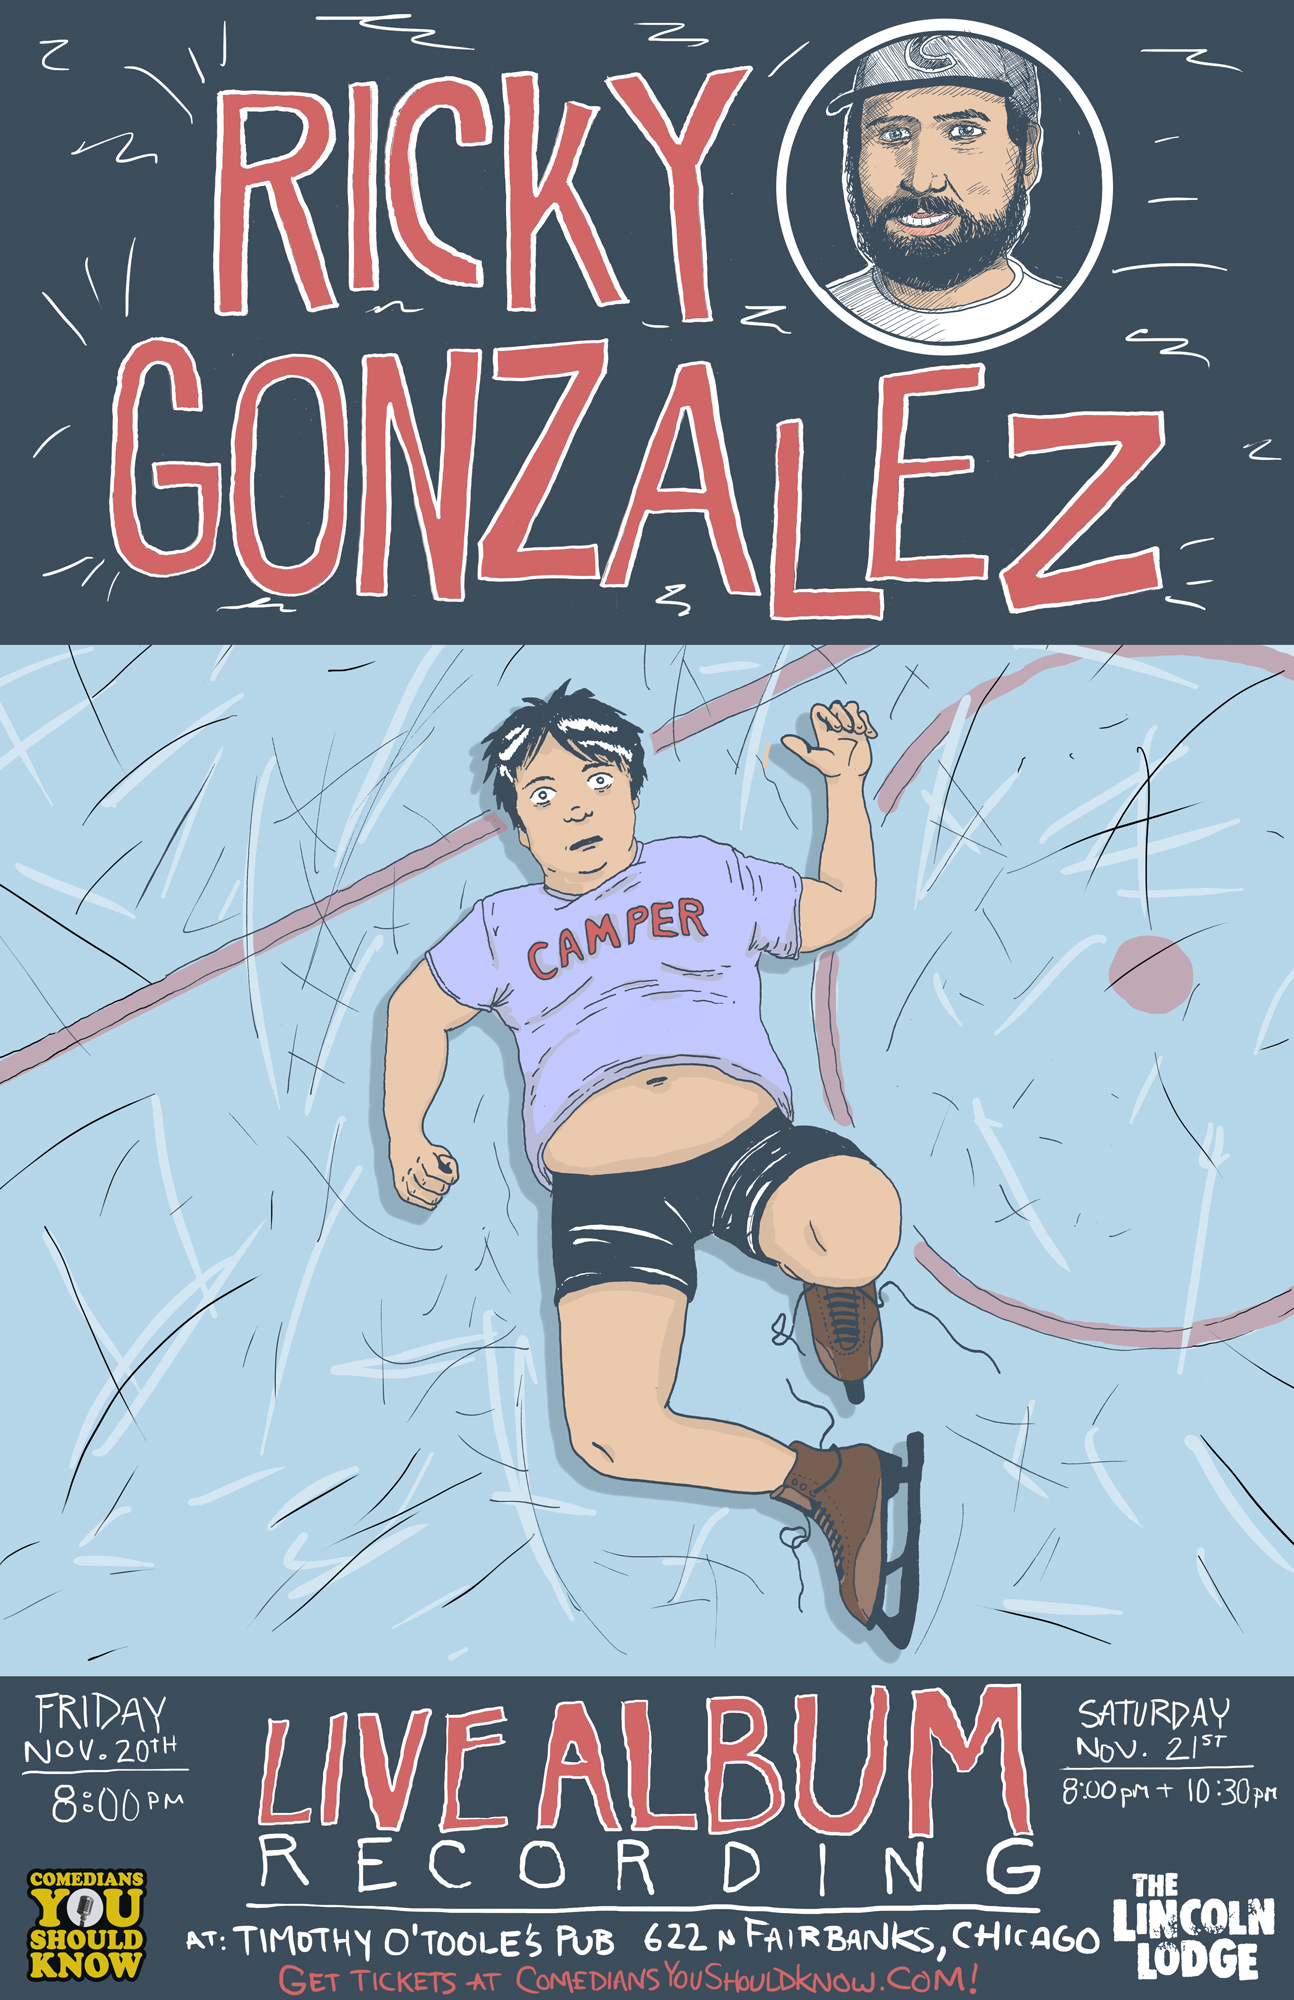 ricky-gonzales-poster_090715.jpg